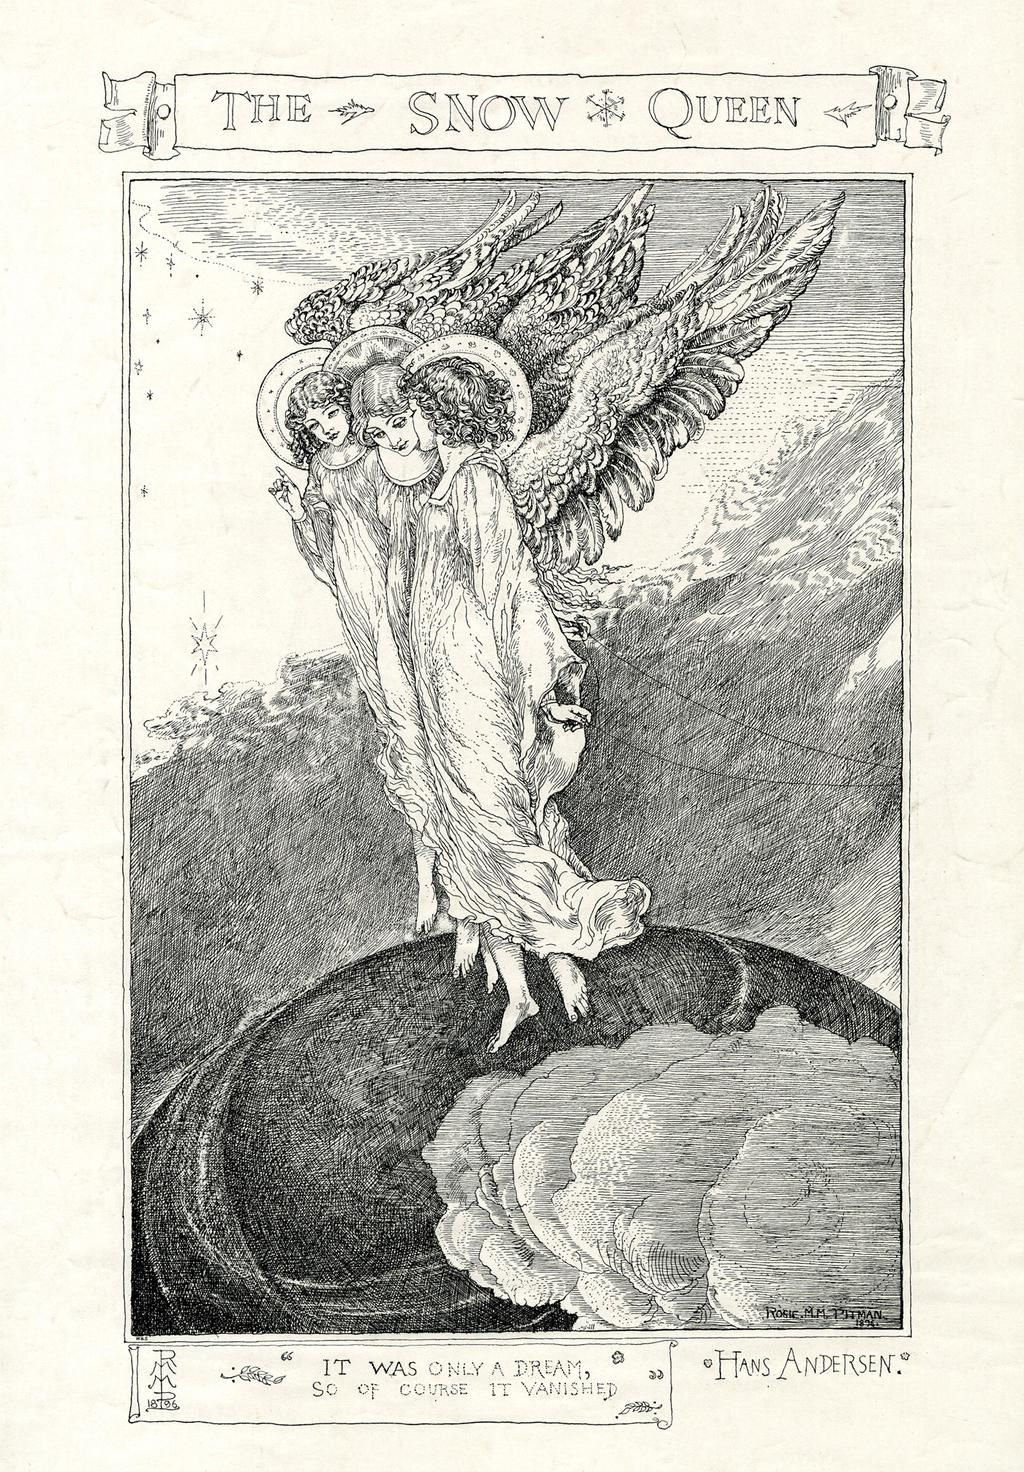 Born #otd in 1805: author Hans Christian Andersen. Here's an illustration of his 'Snow Queen' http://ow.ly/L10tf